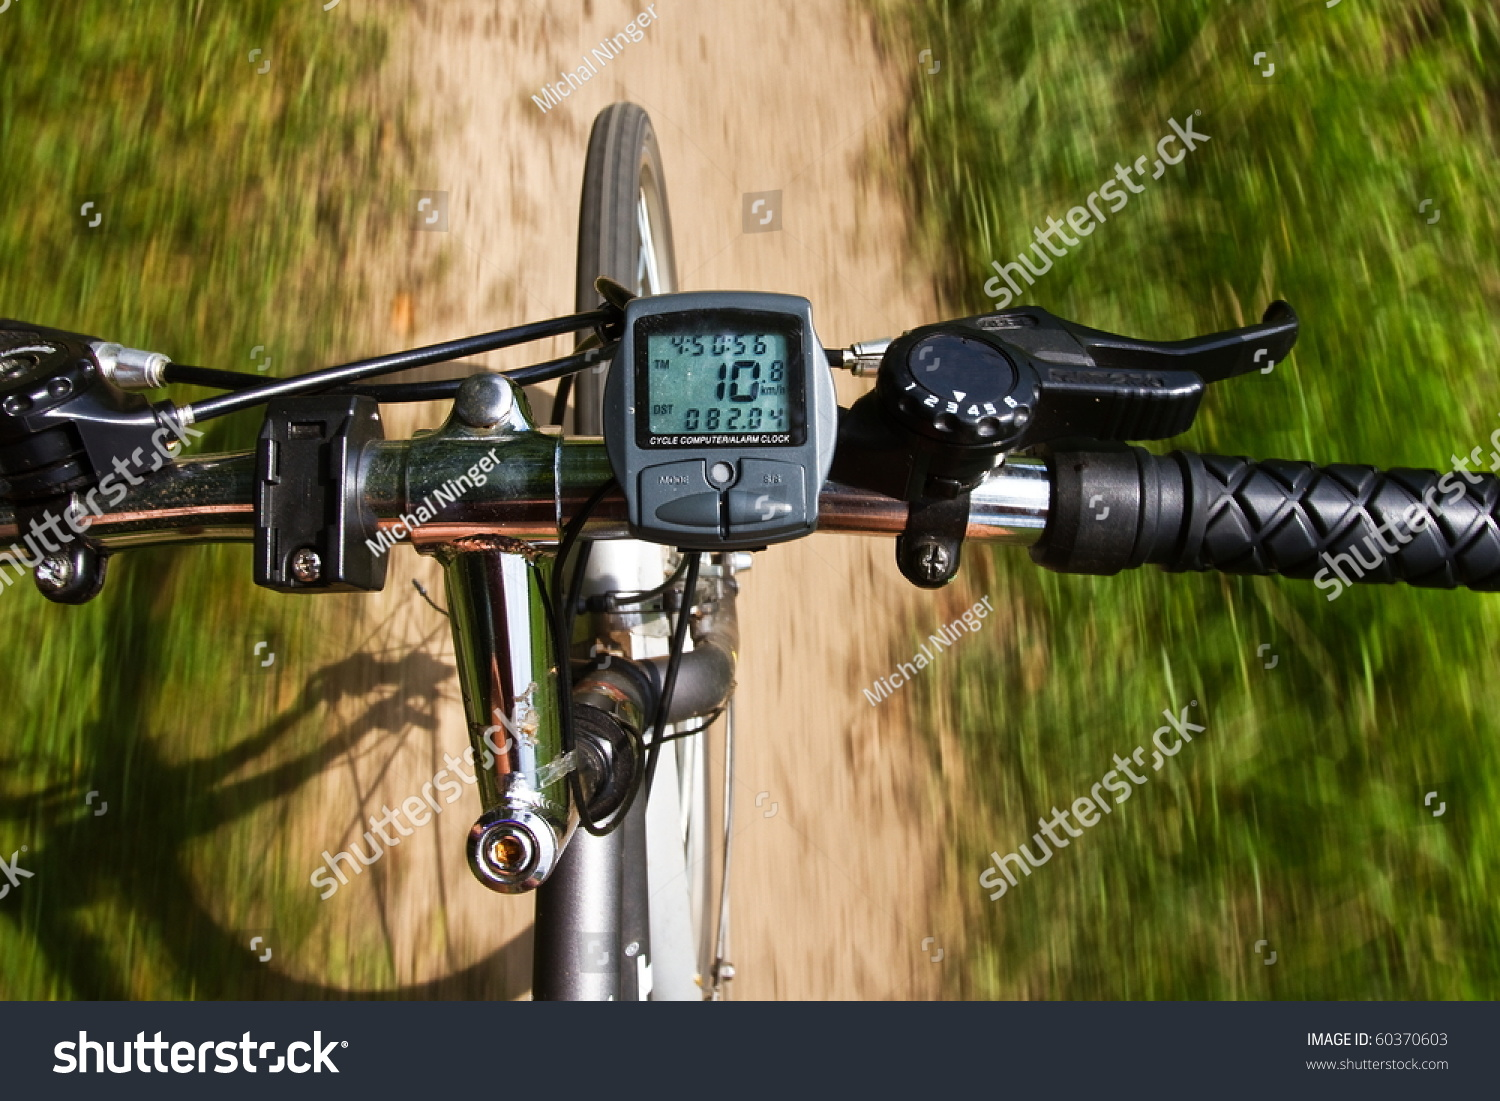 detail the handlebars of a bicycle while driving